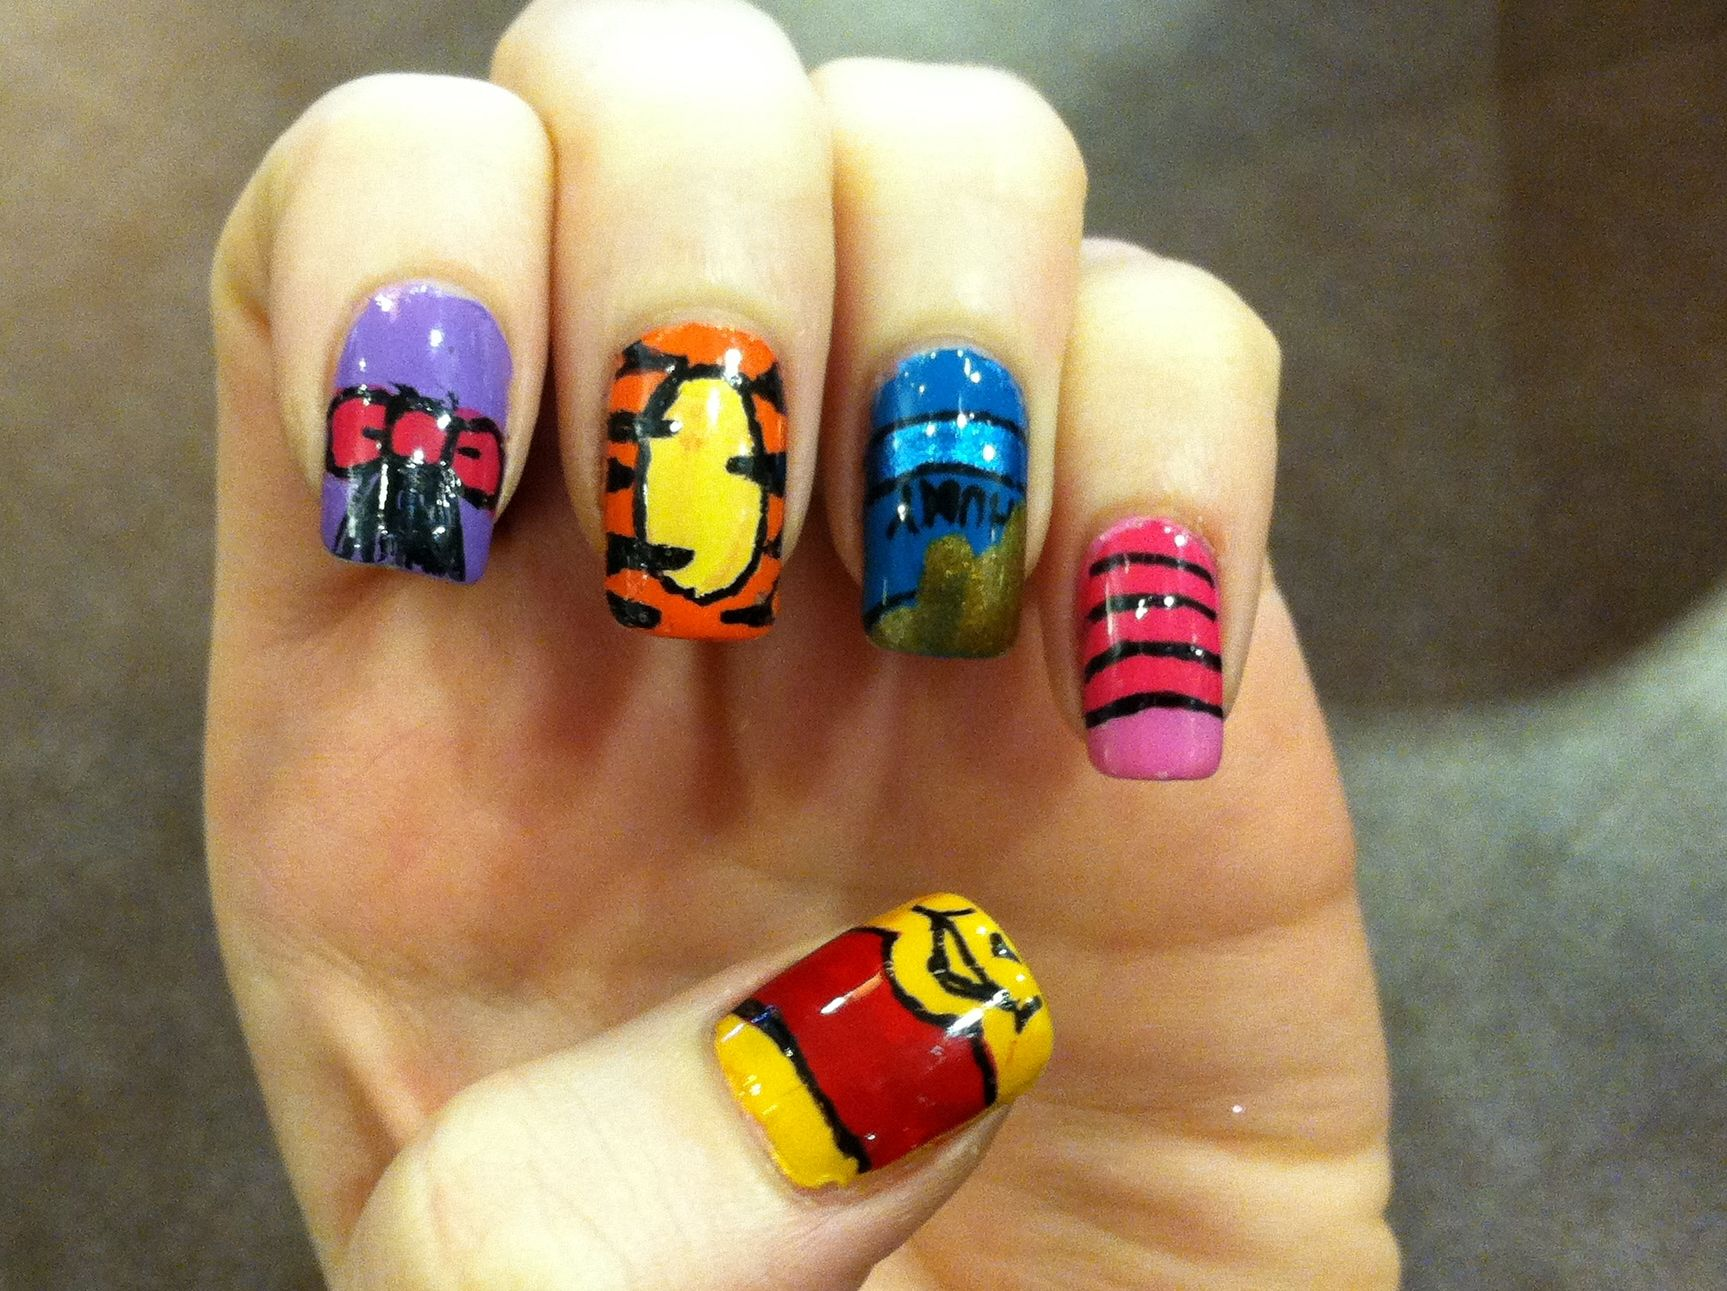 cute baby winnie the pooh nails - Google Search | winnie the pooh ...